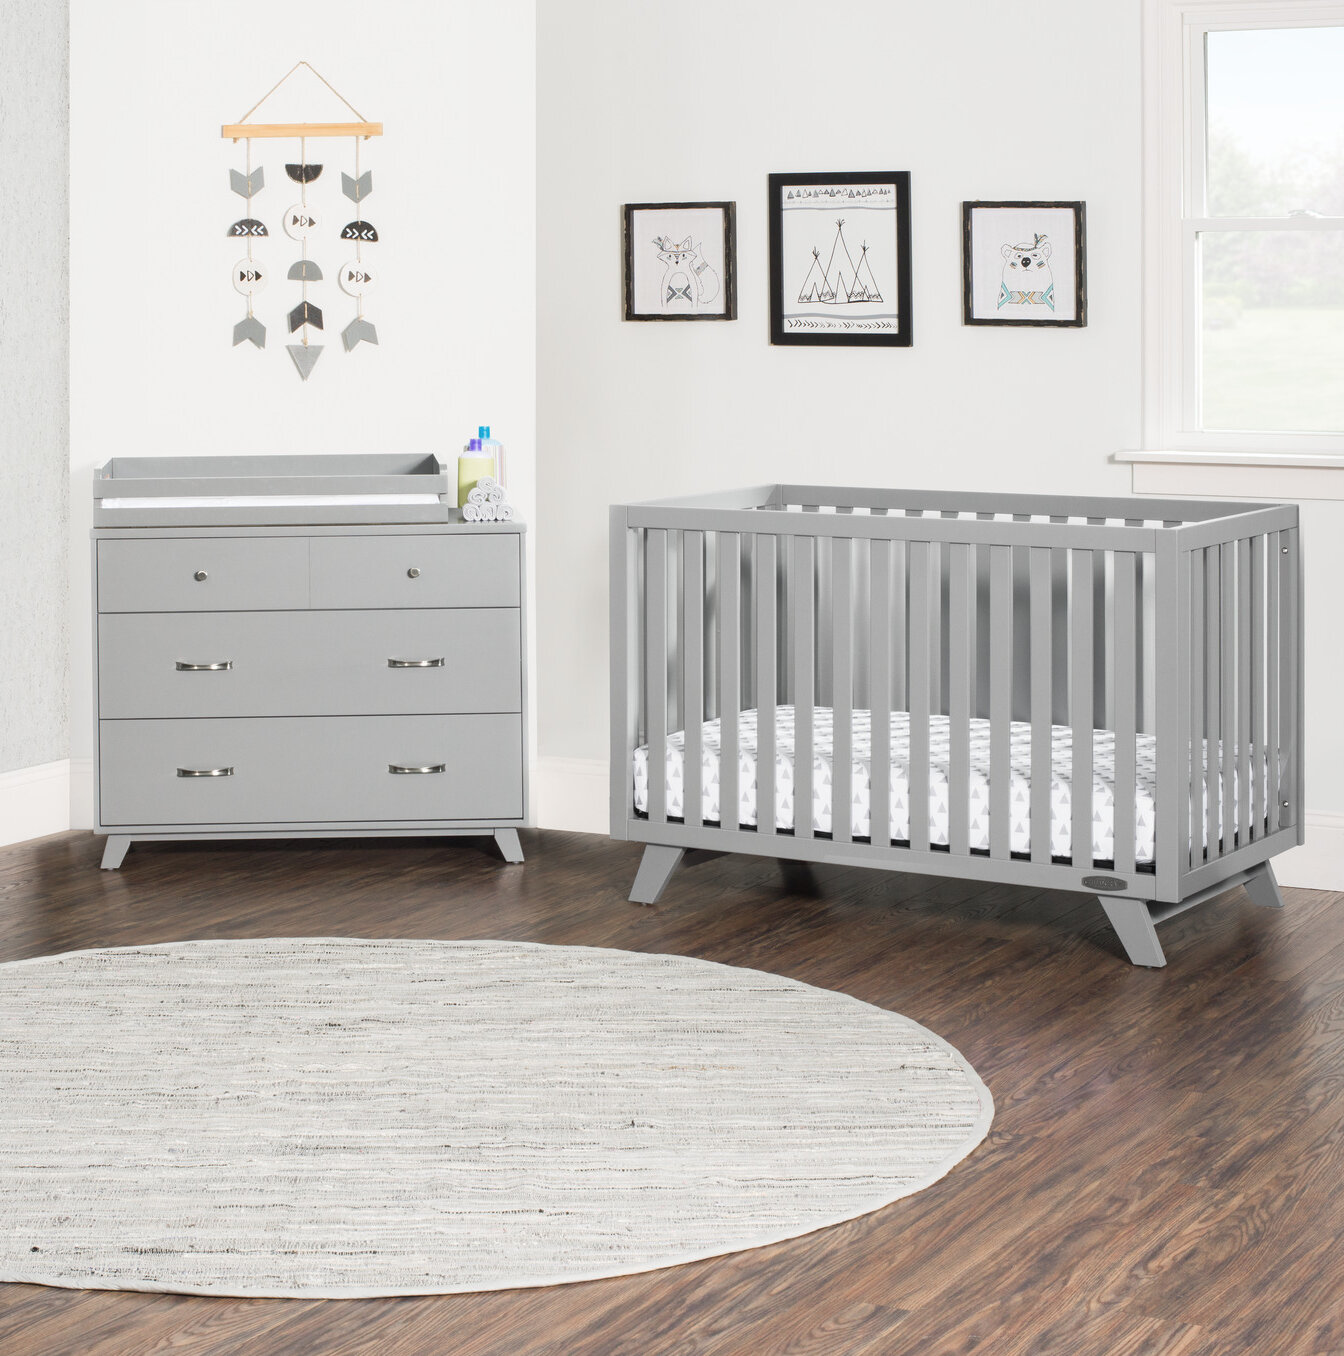 Kaiser Point 4 In 1 Convertible Standard 3 Piece Nursery Furniture Set